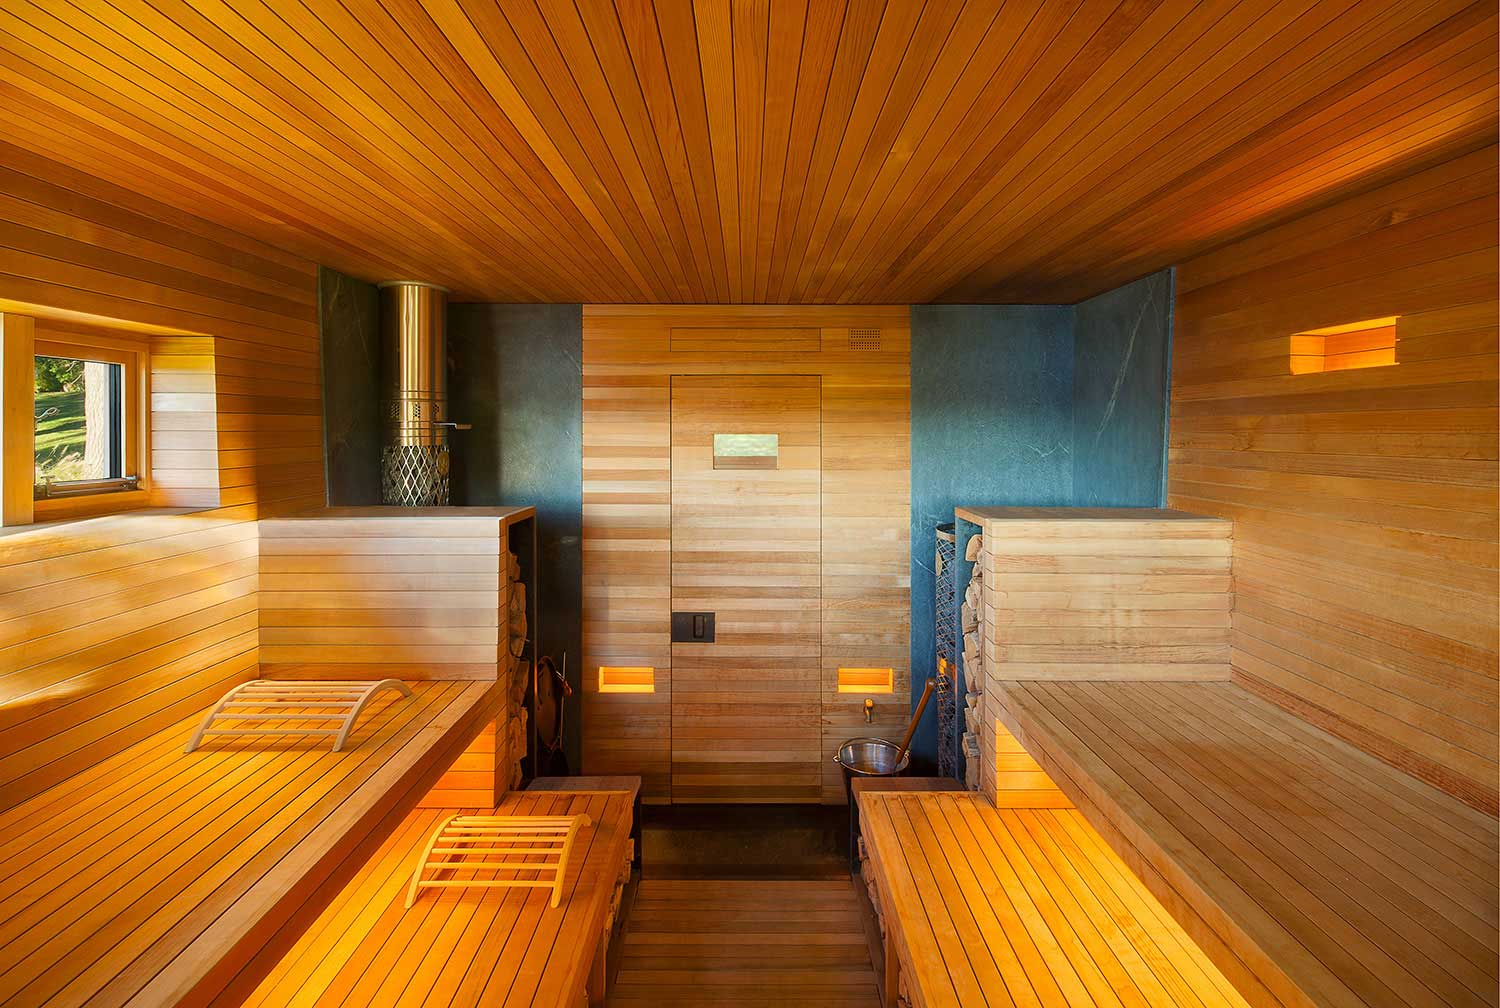 Wooden sauna welcomes guests to sweat out the stress of Wood valley designs